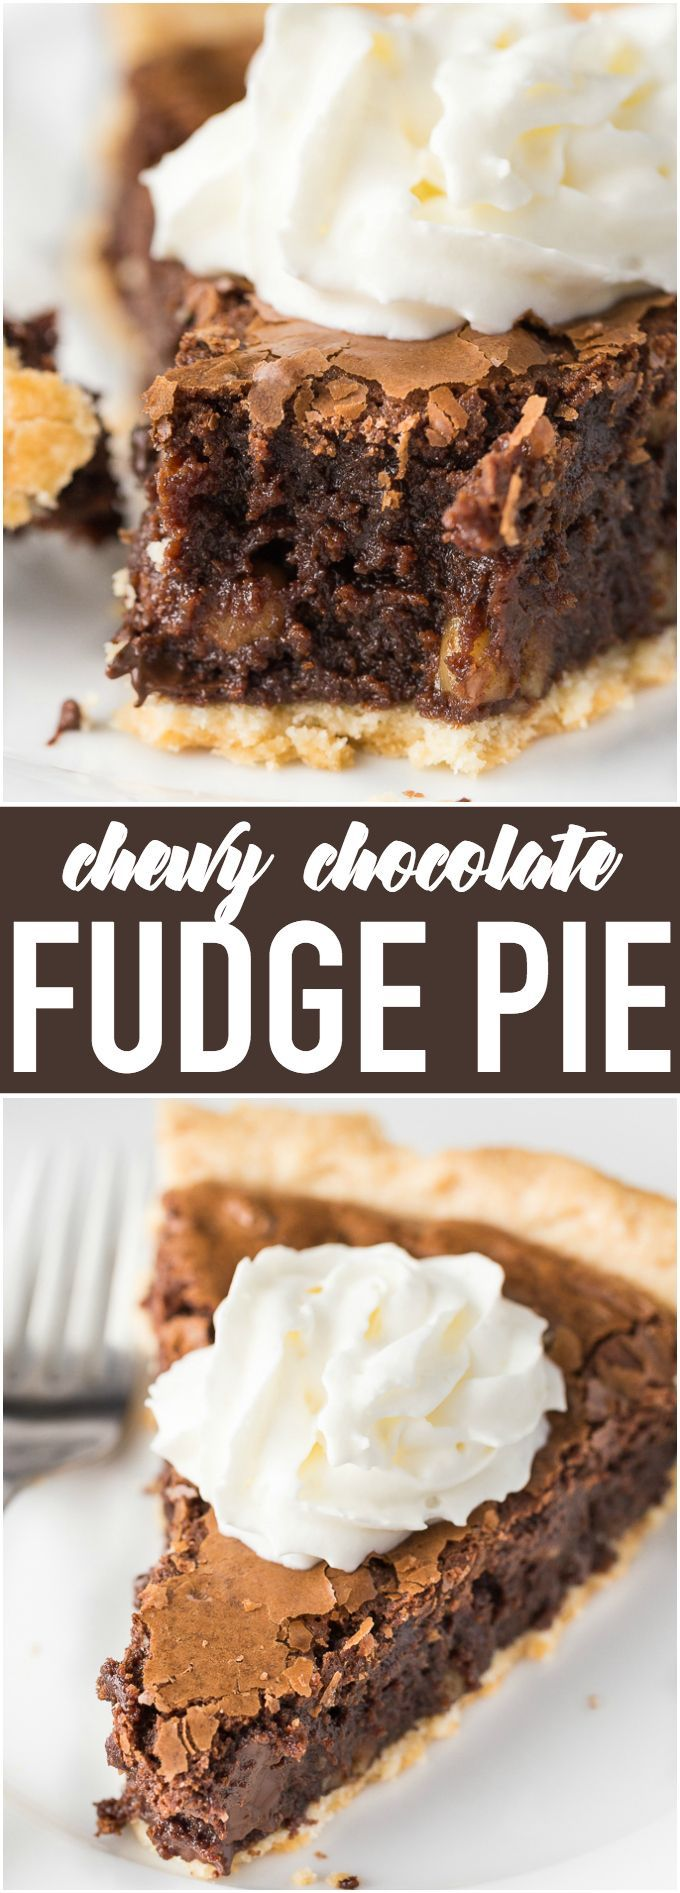 Chewy Chocolate Fudge Pie - The perfect Easter dessert that tastes just like a brownie!